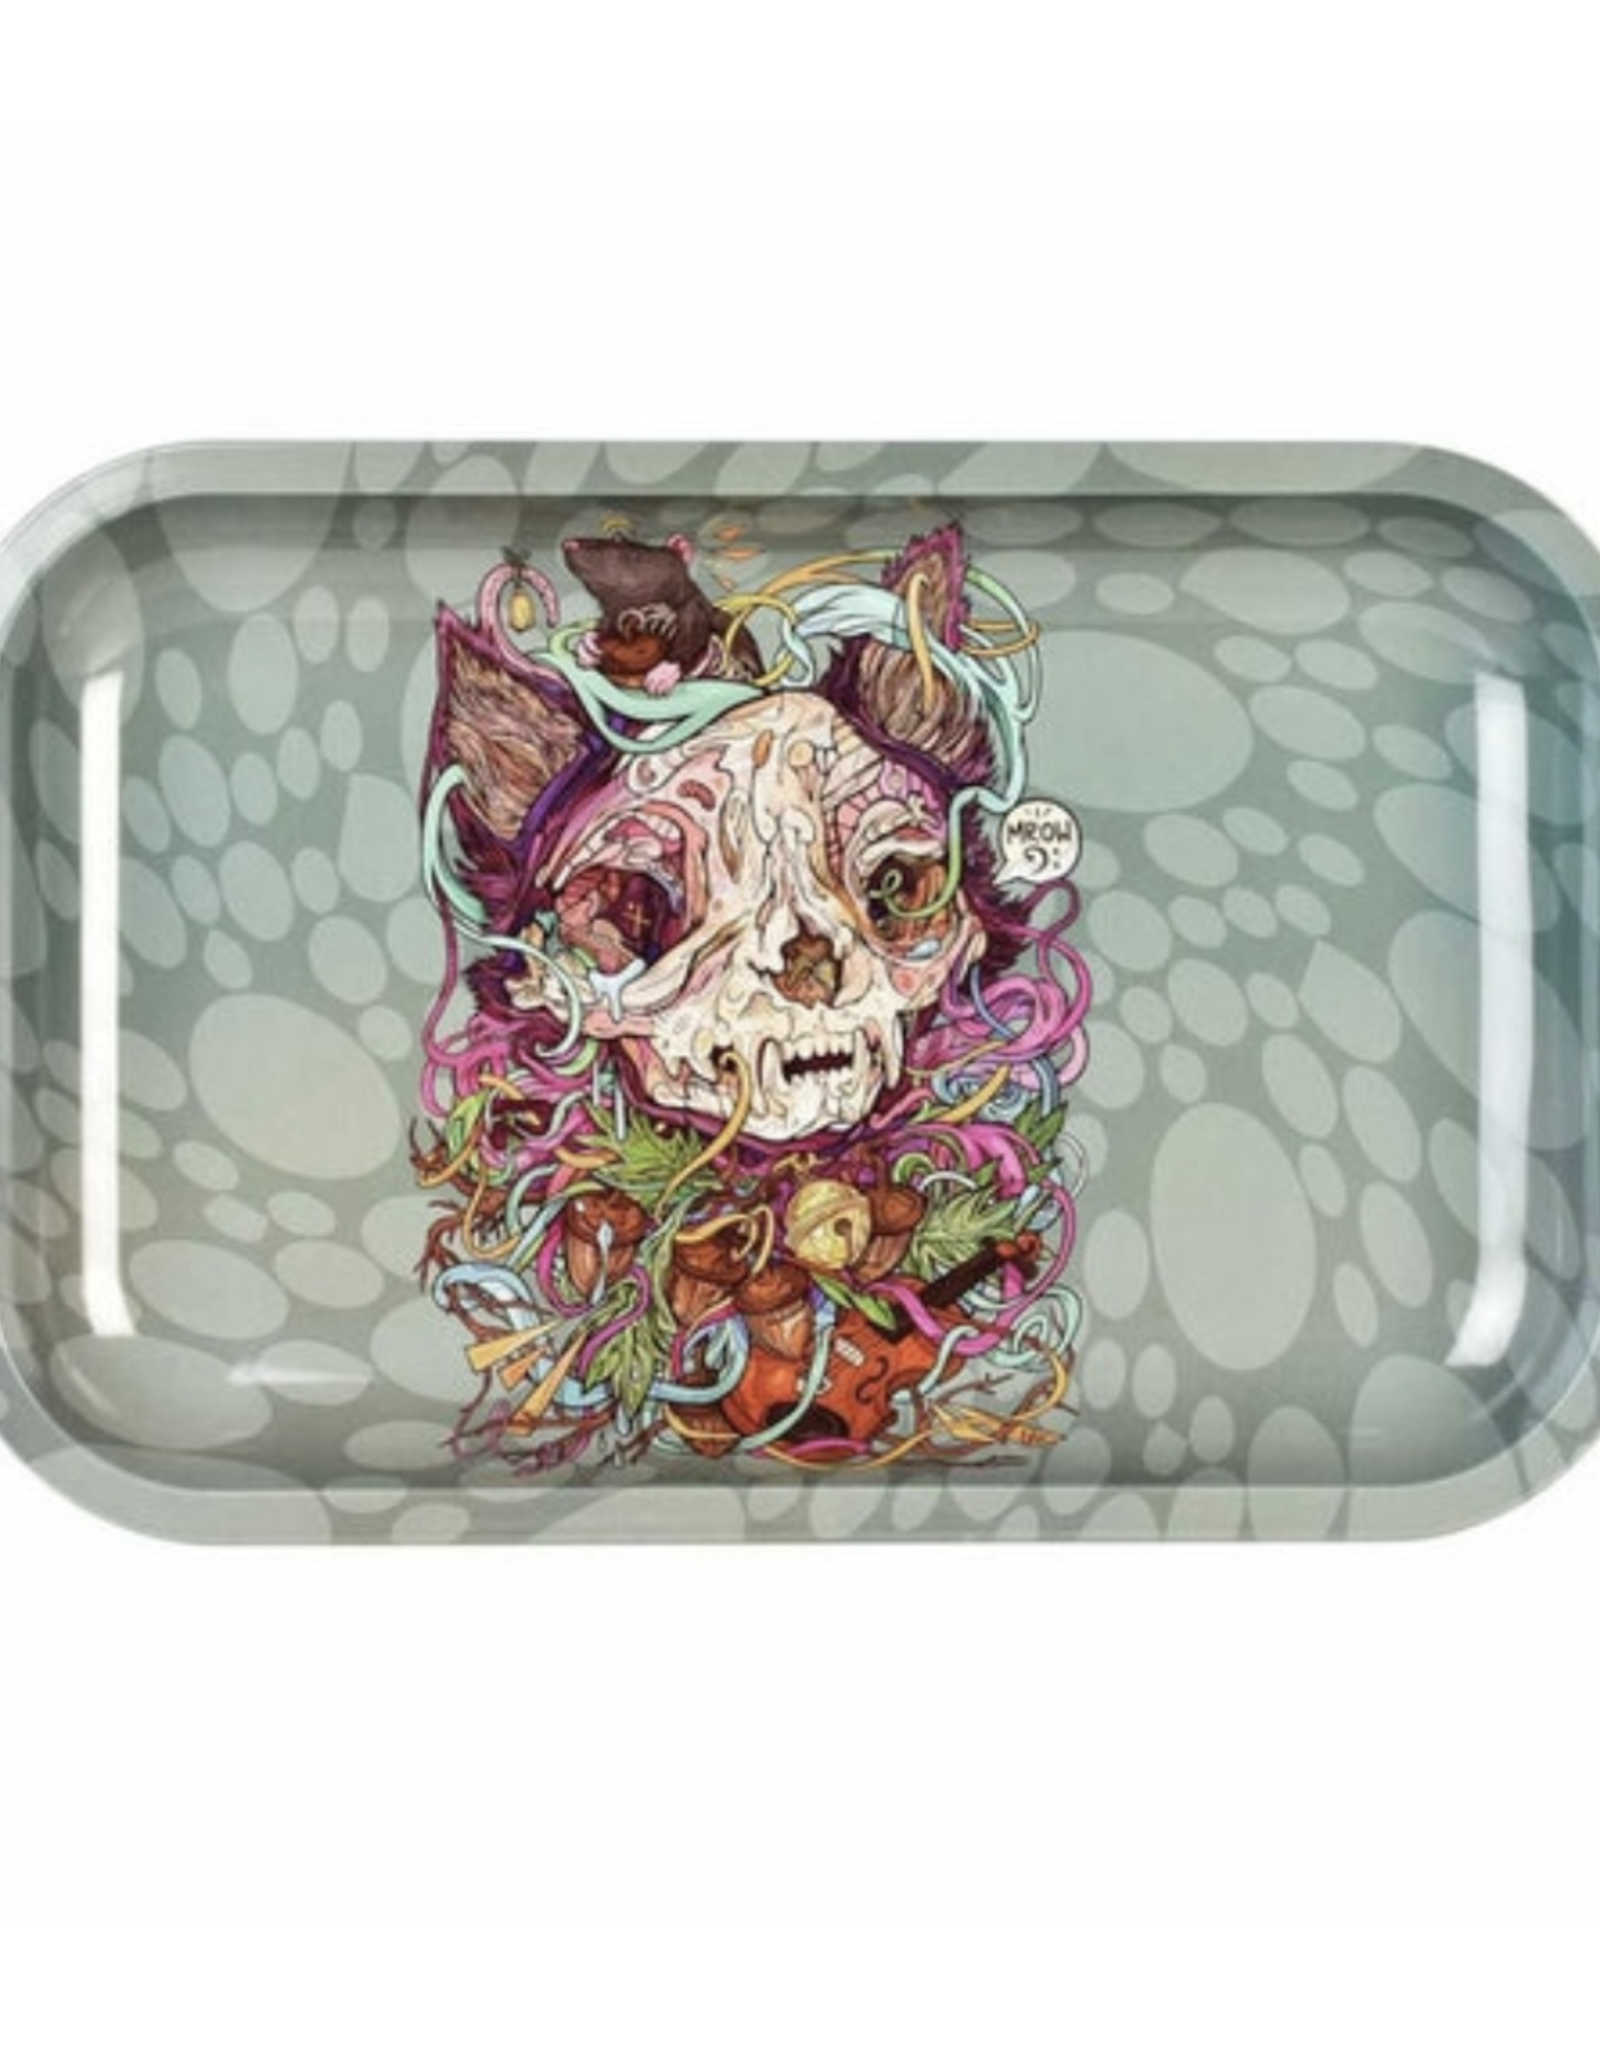 """Pulsar Pulsar 11"""" x 7"""" Rolling Tray - Cat & Mouse"""